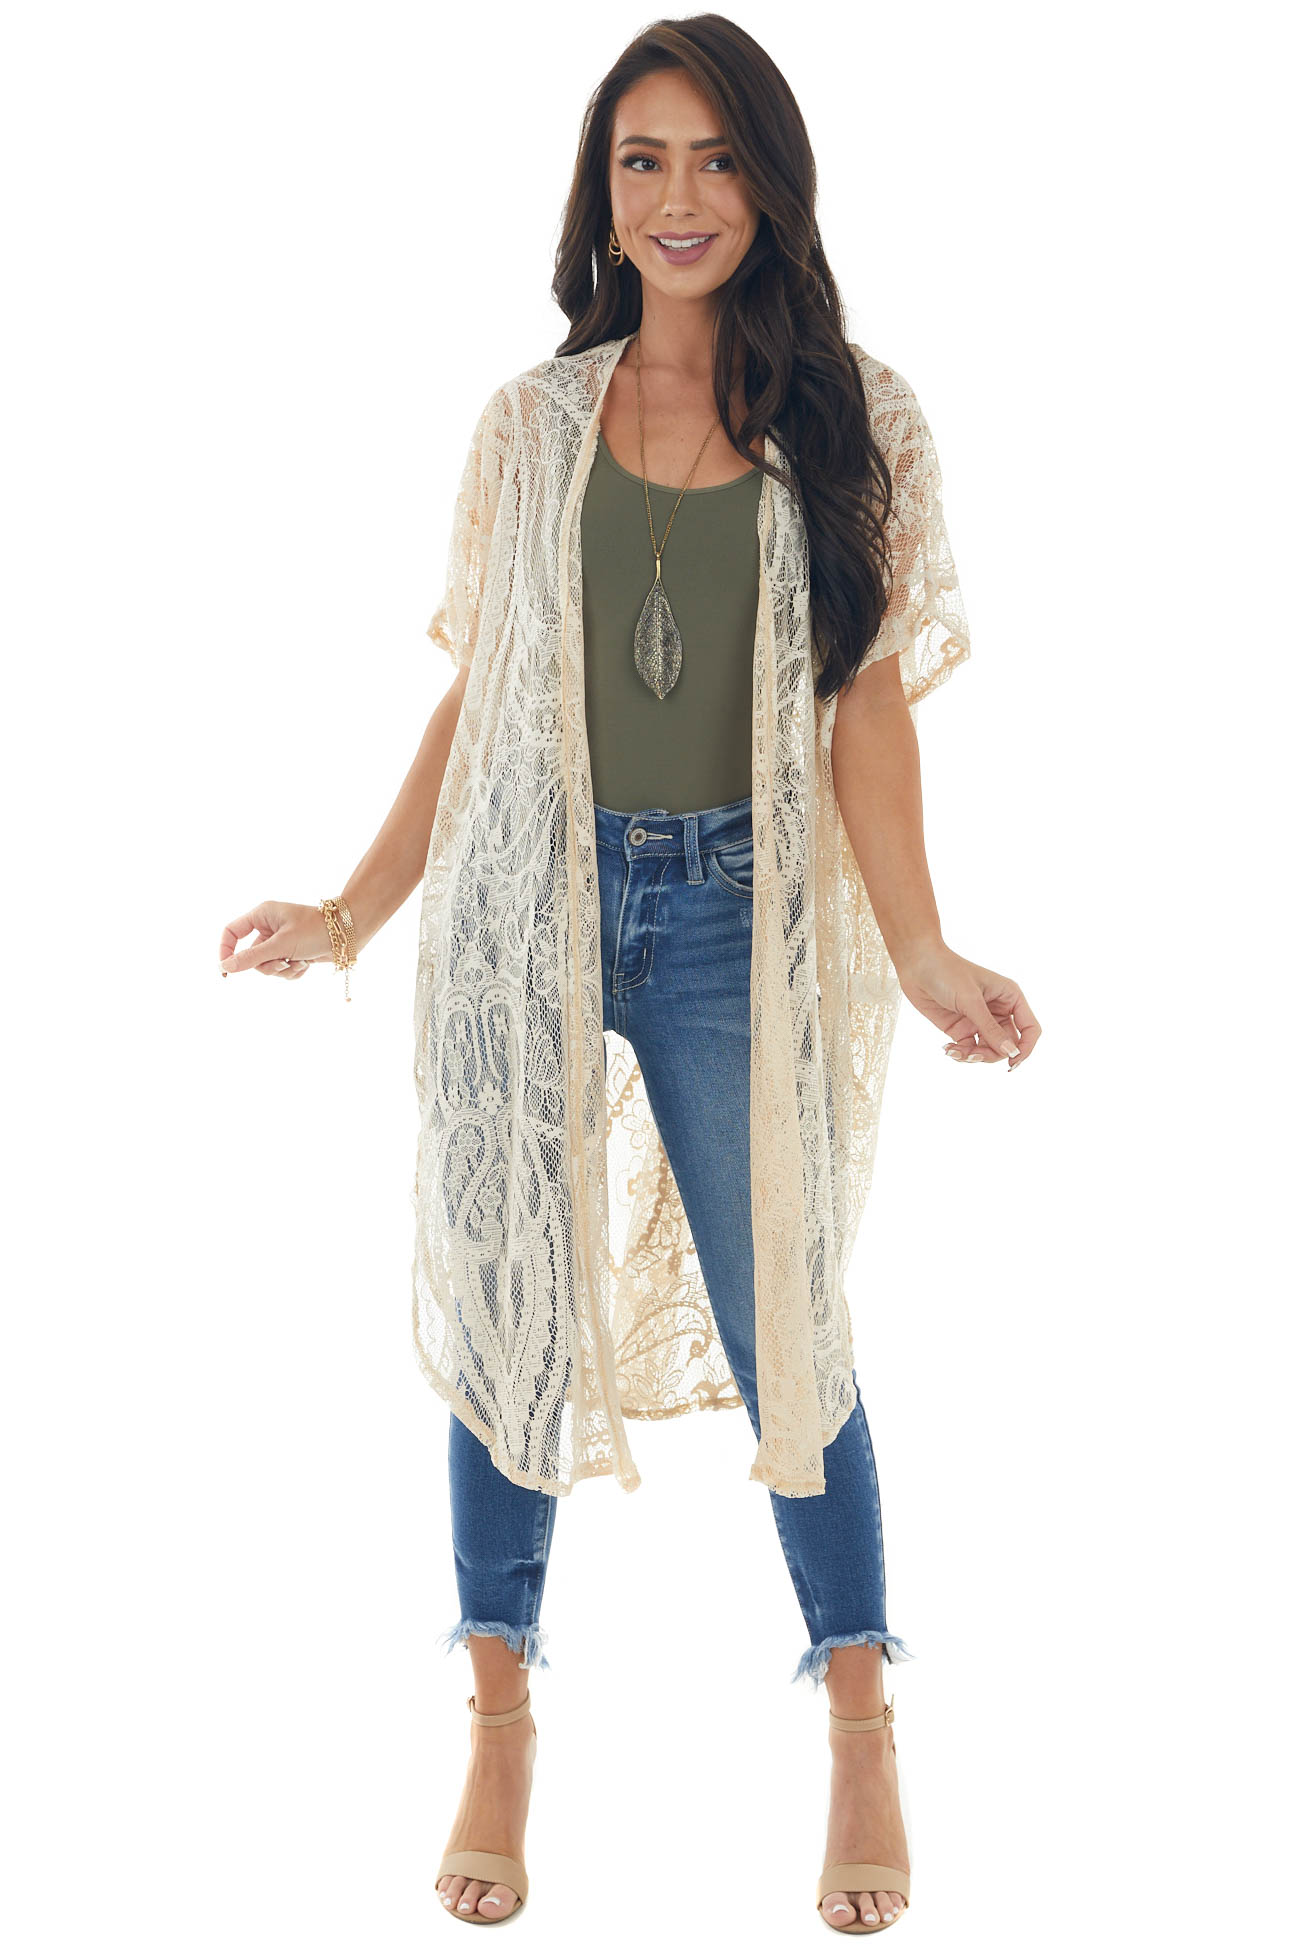 Rich Cream Floral Lace Sheer Duster Cardigan